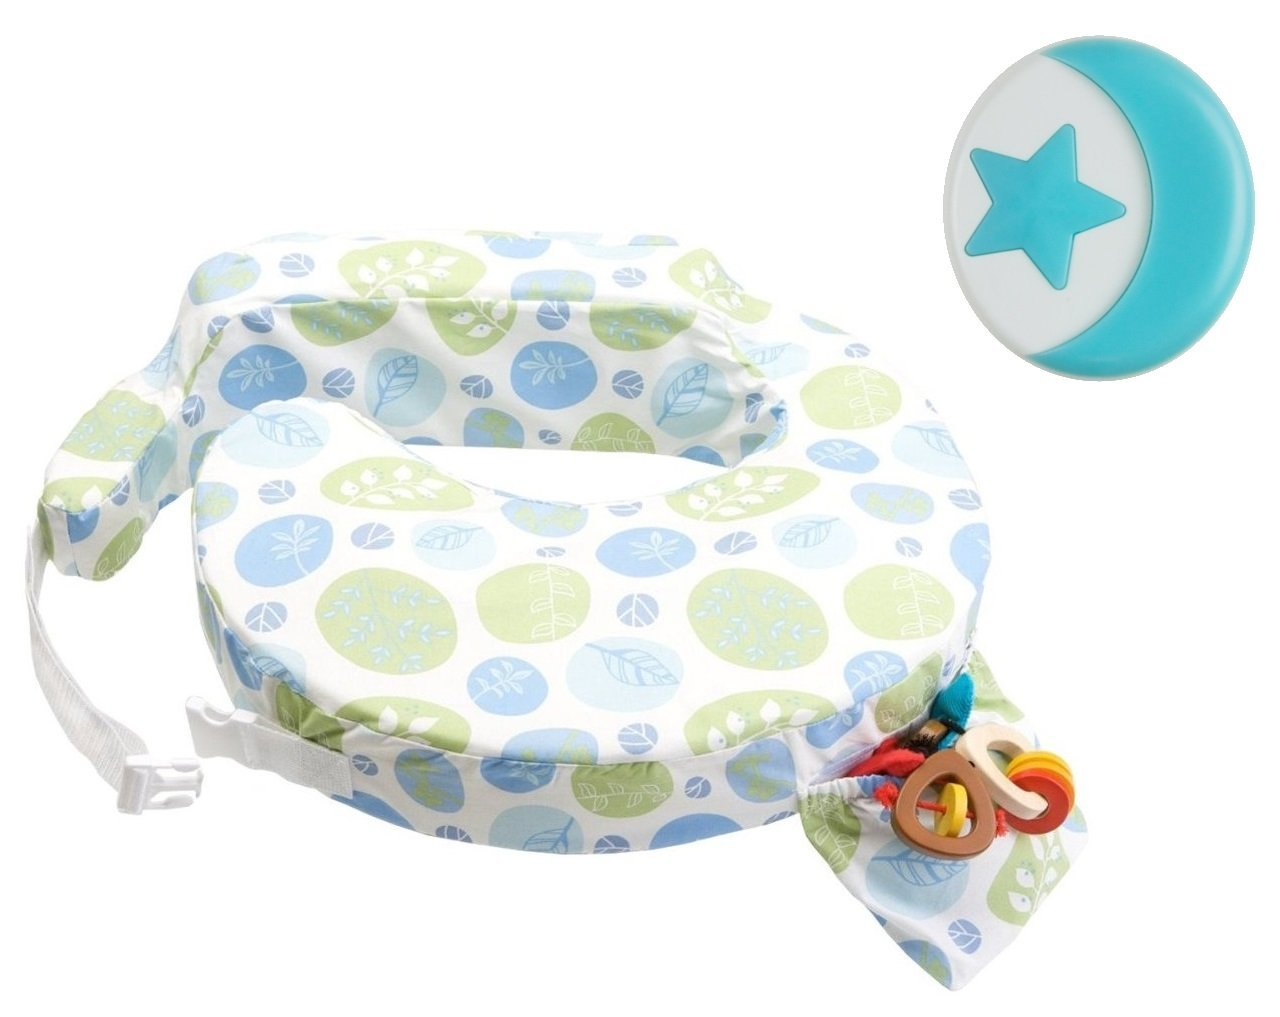 My Brest Friend Original Breastfeeding Pillow with Blue Nursing Light, Sunburst by My Brest Friend